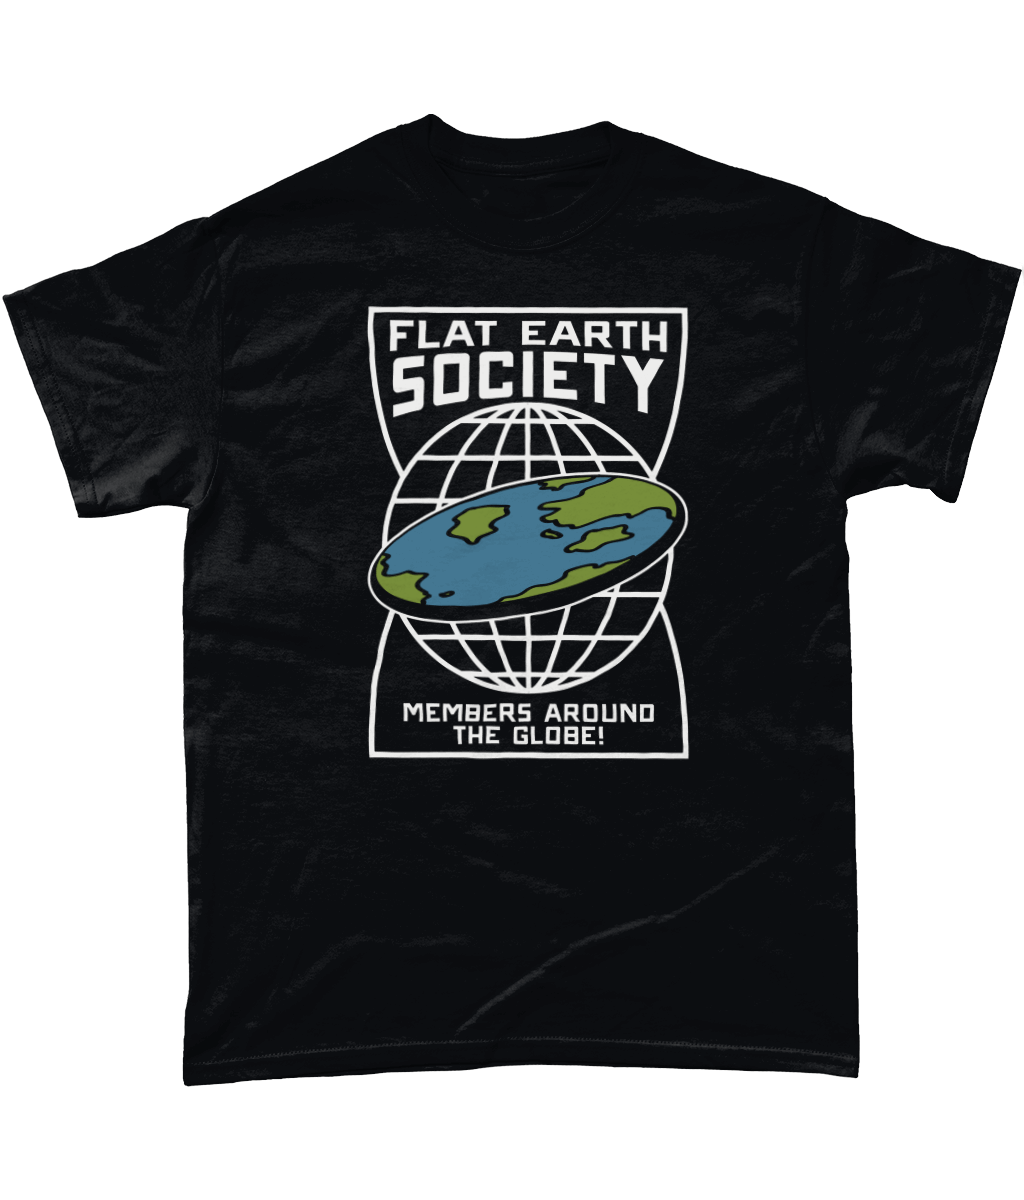 481dc743 Funny Flat Earth Society T-Shirt with members around the globe design